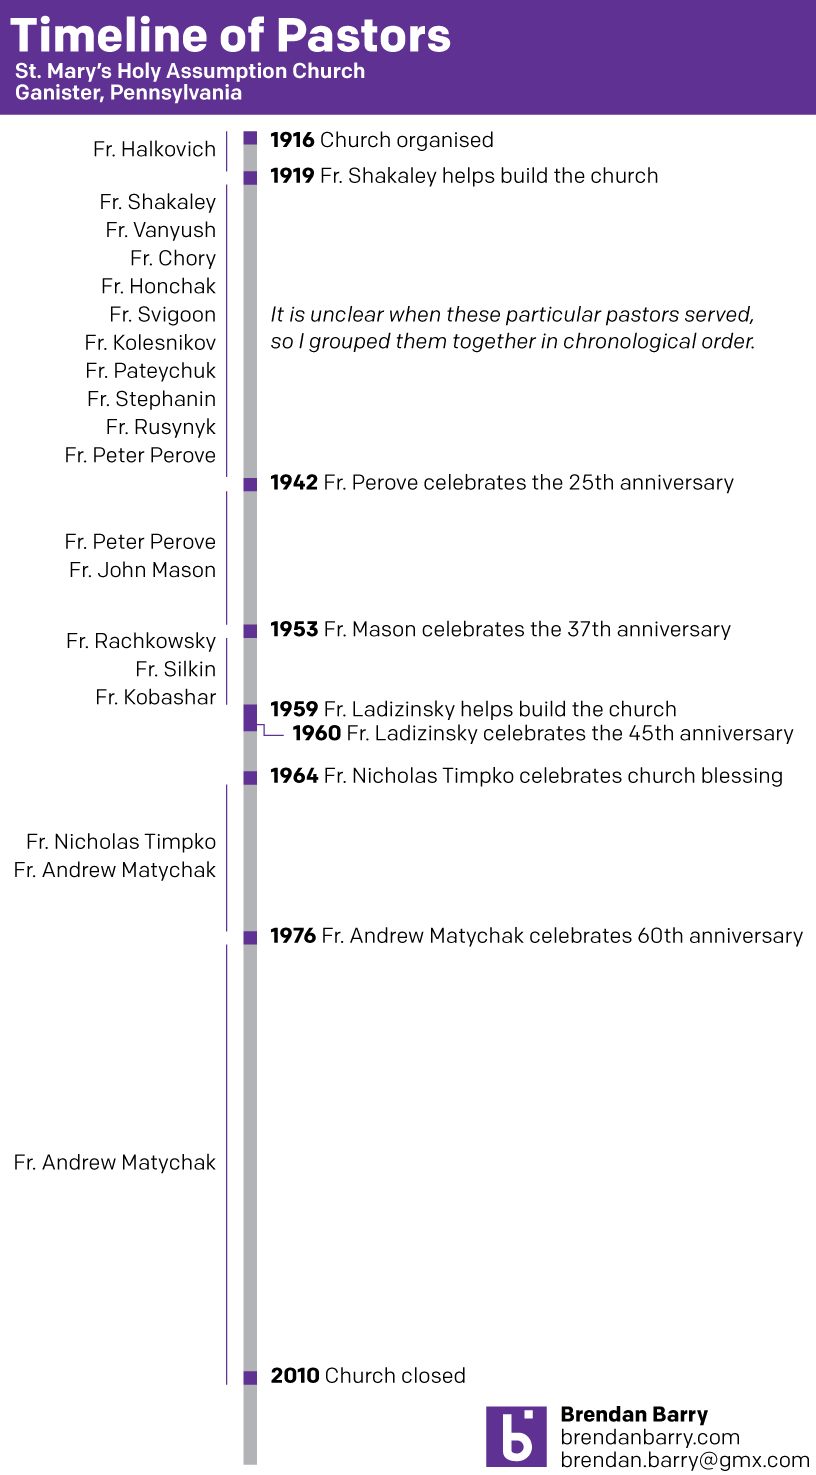 A timeline of Ganister priests